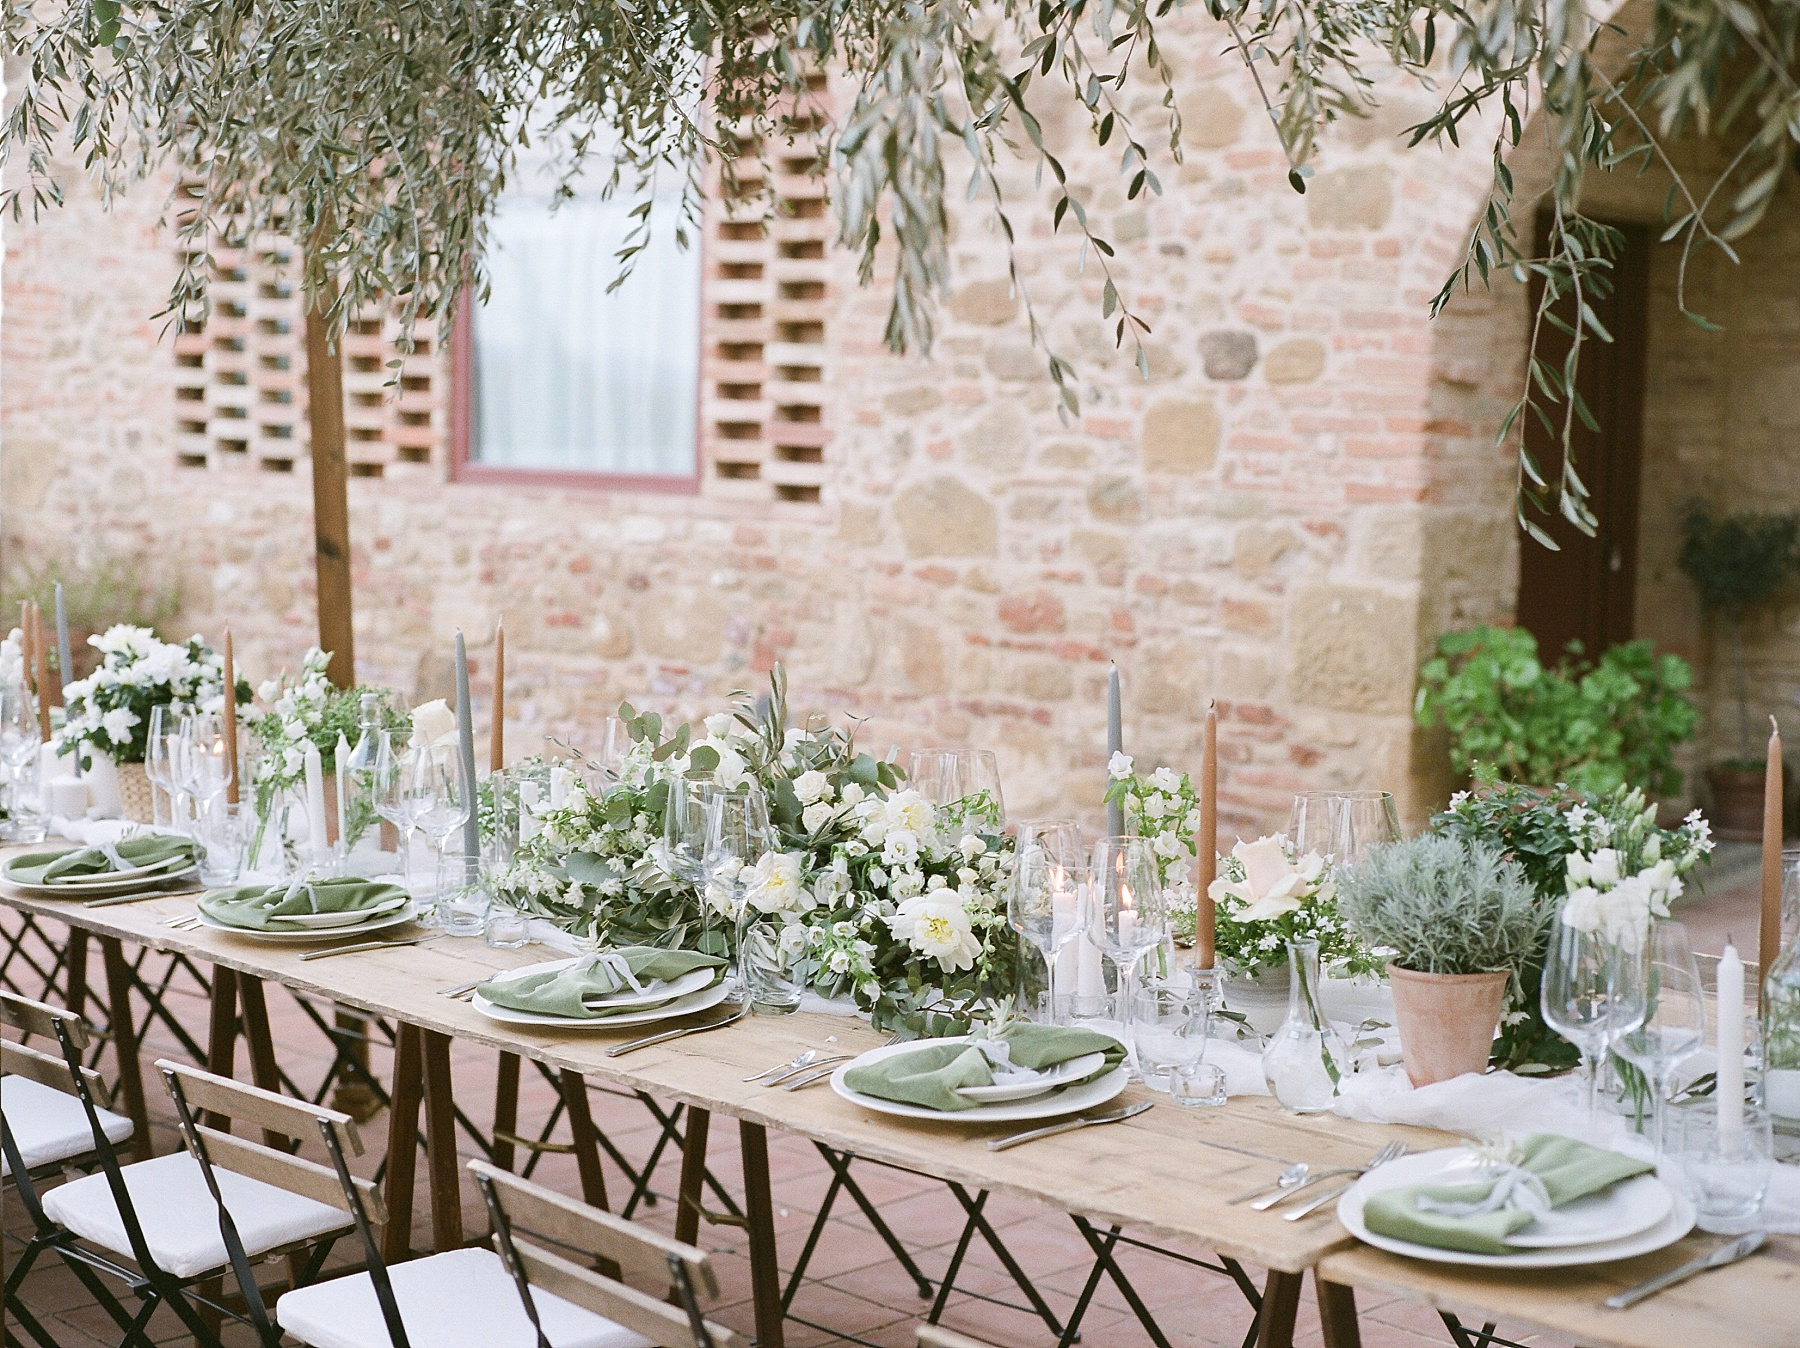 All White Destination Wedding in the Hills of Tuscany Italy at Estate Borgo Petrognano by Kelsi Kliethermes Photography_0024.jpg